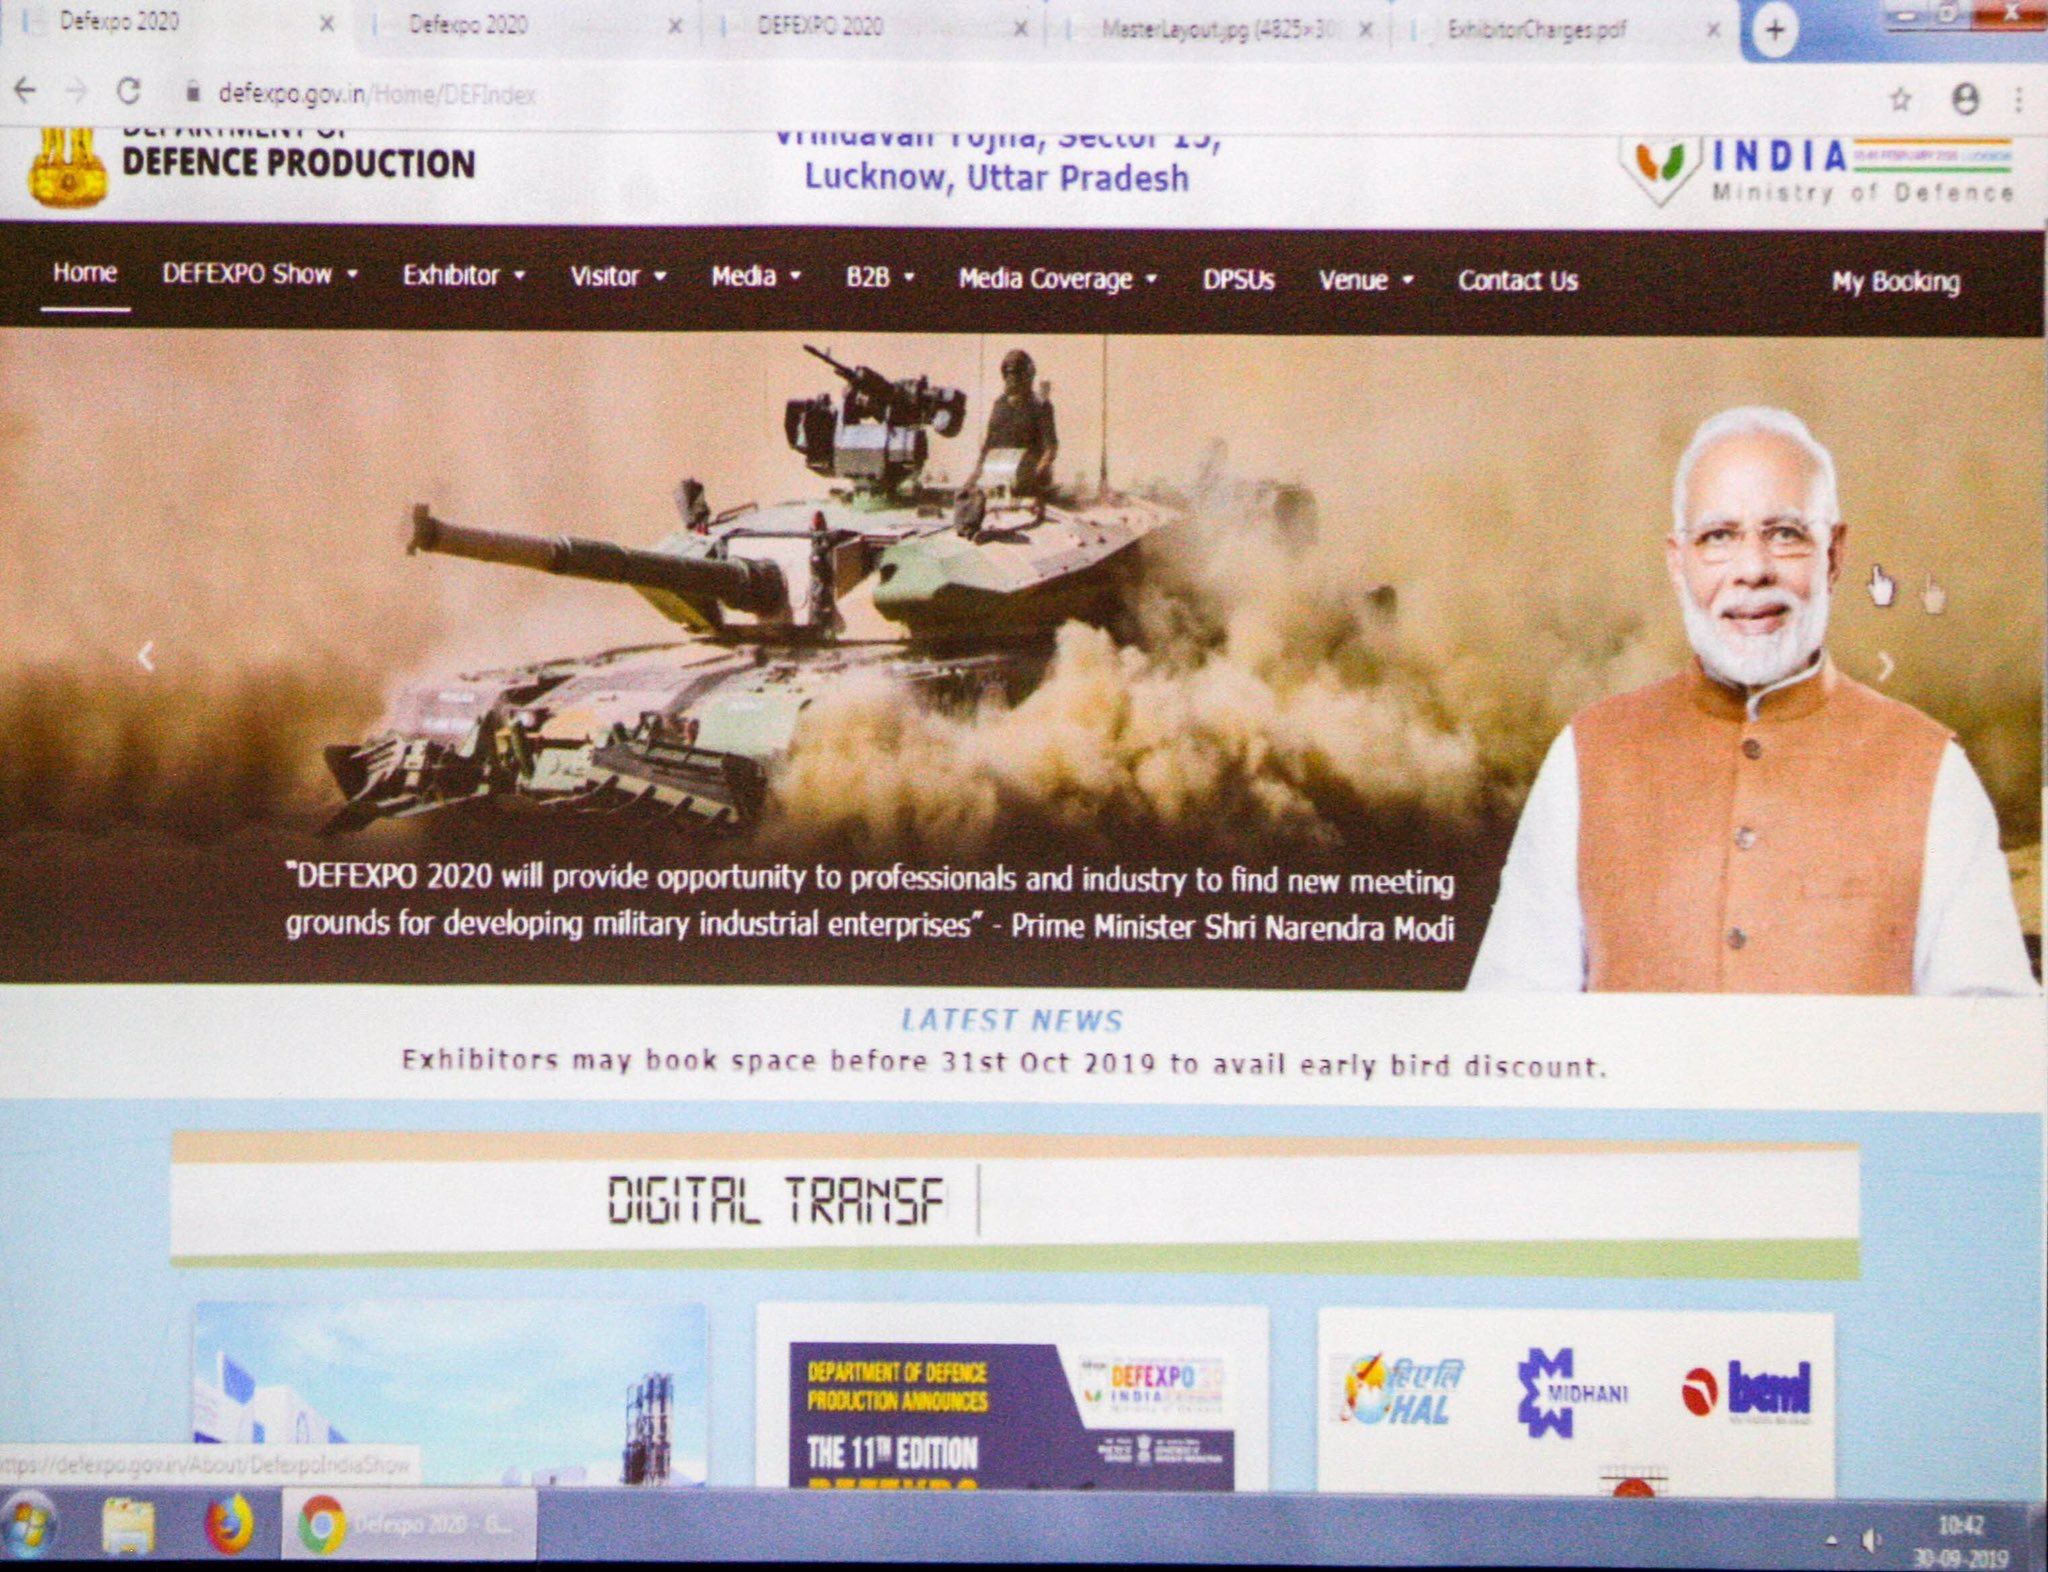 Defence Minister Rajnath Singh launches DefExpo website